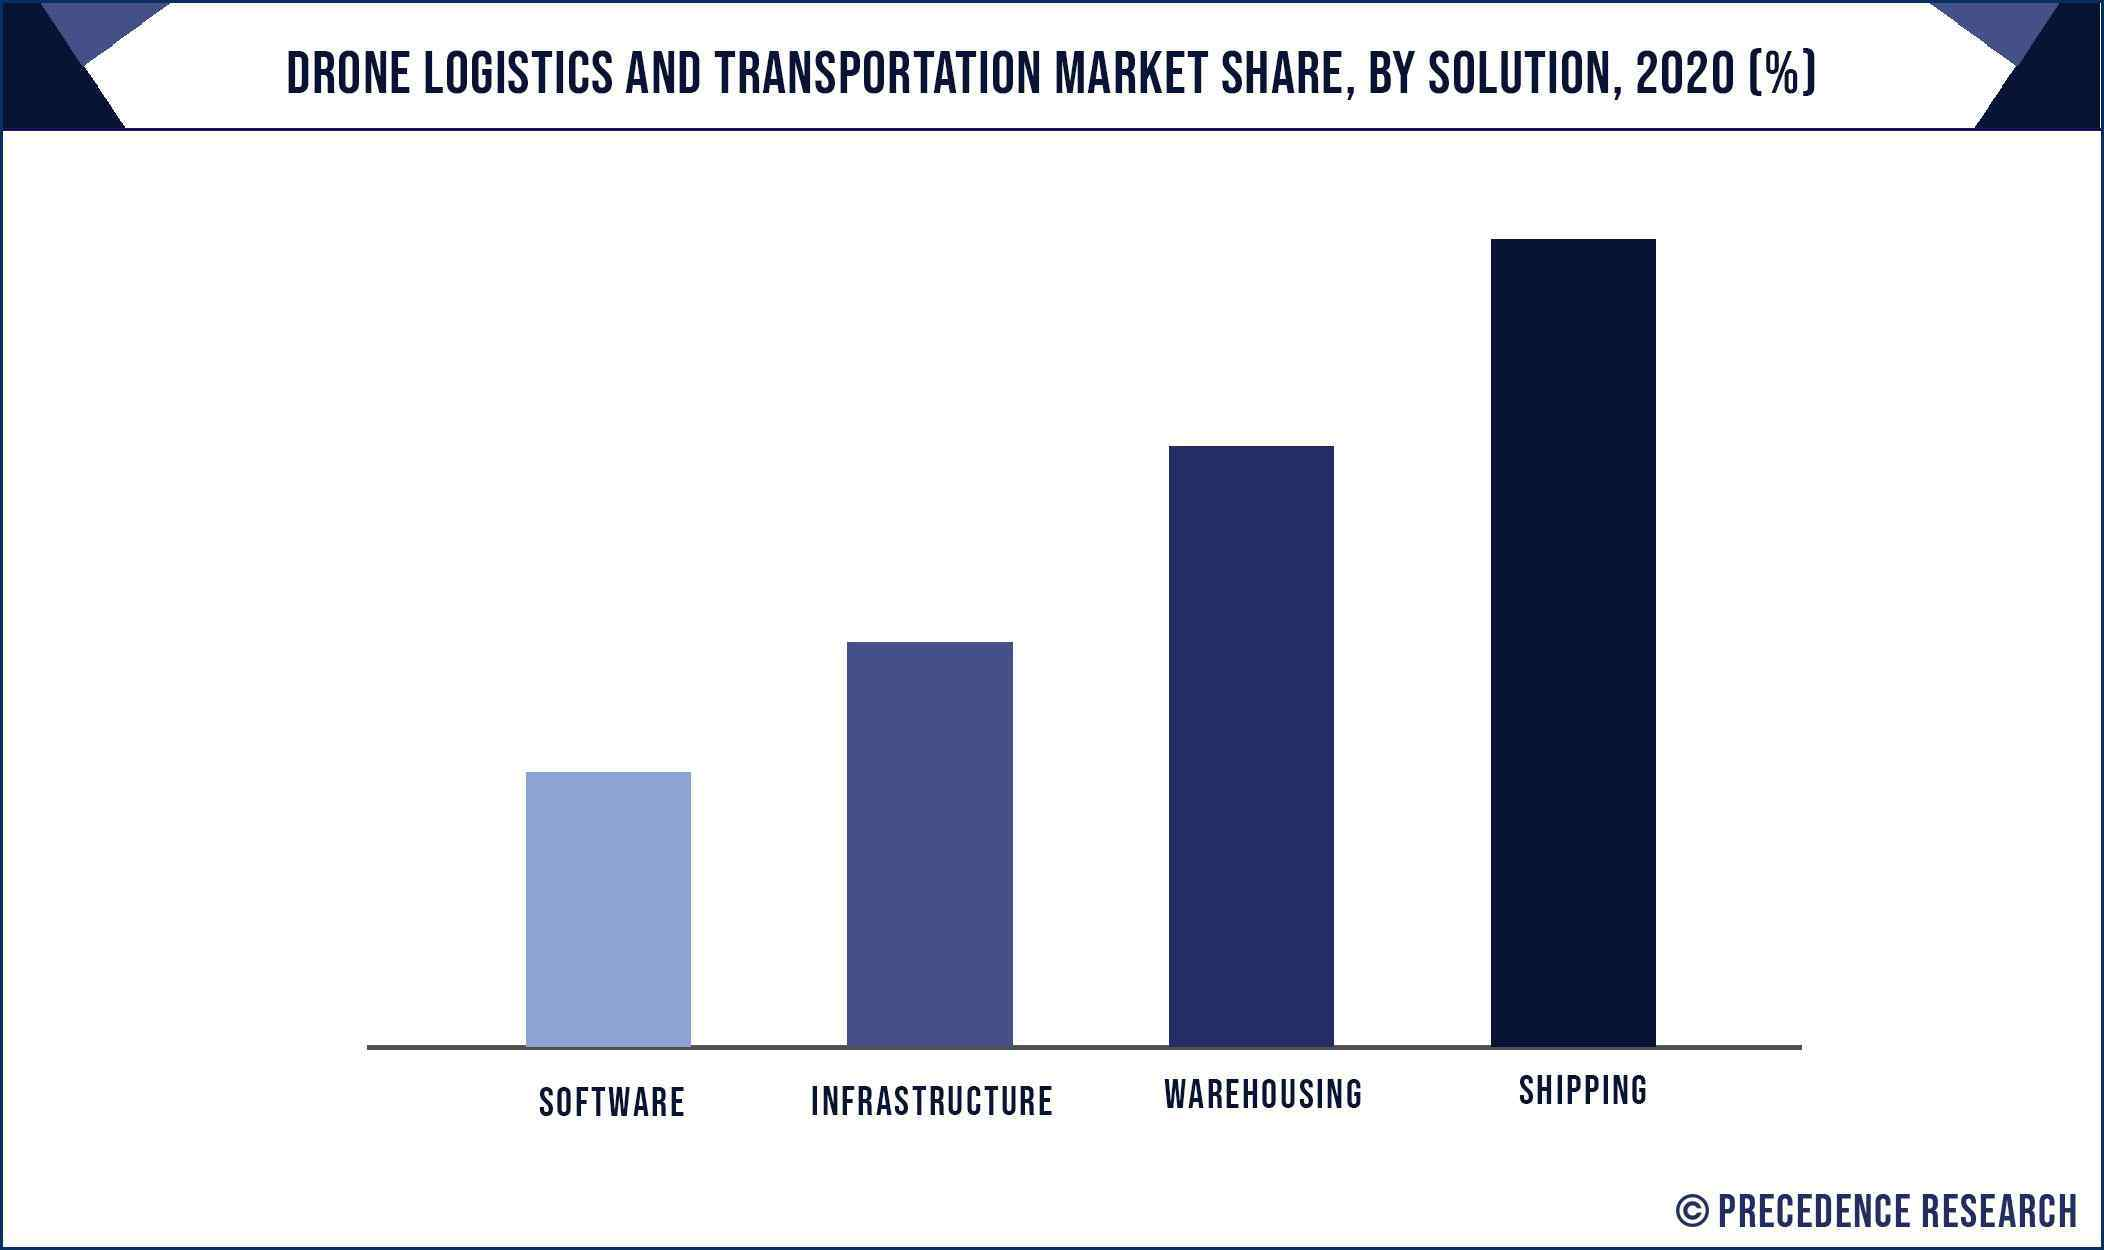 Drone Logistics and Transportation Market Share, By Solution, 2020 (%)